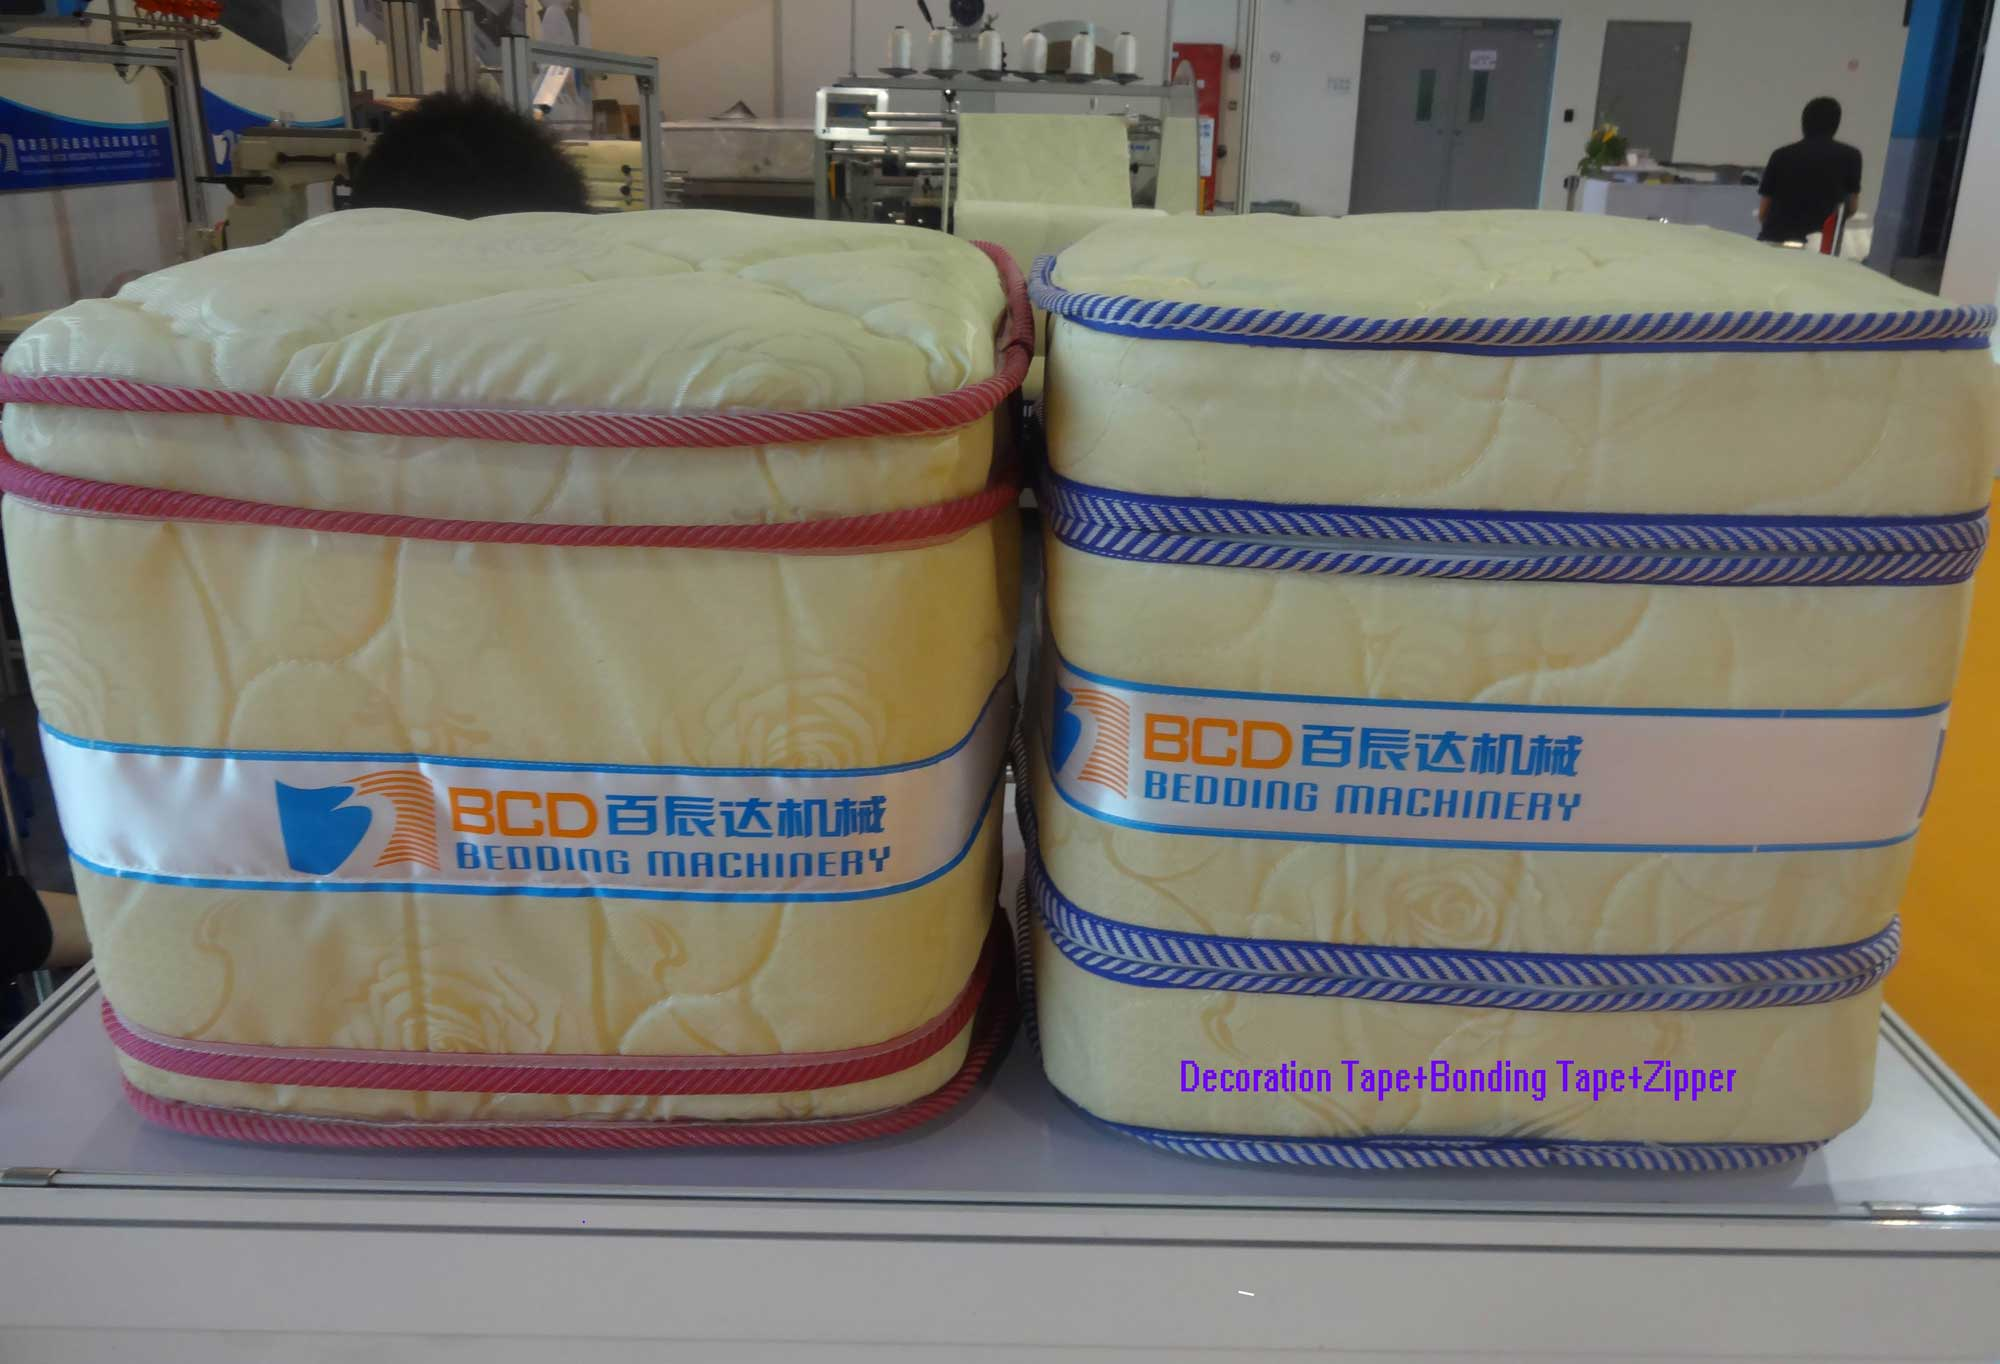 Model BFD Mattress Decoration Tape Sewing System(3 In 1)